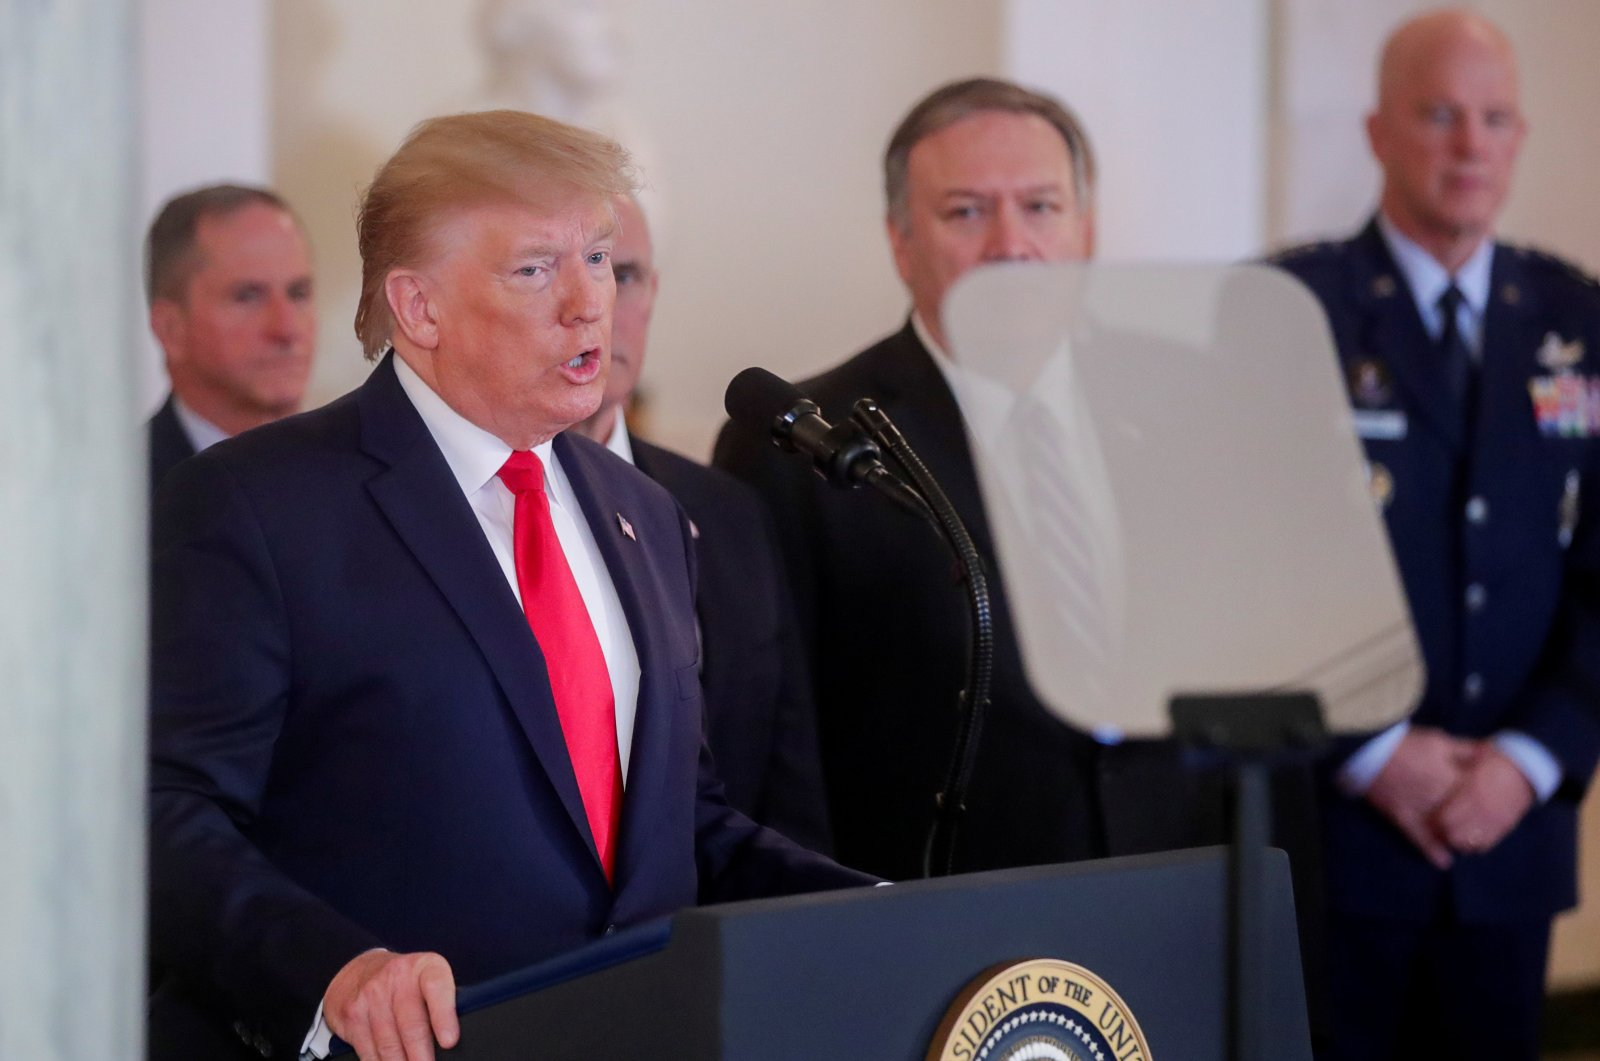 U.S. President Donald Trump delivers a statement in the Grand Foyer at the White House, Washington, D.C., U.S., Jan. 8, 2020. (Reuters Photo)